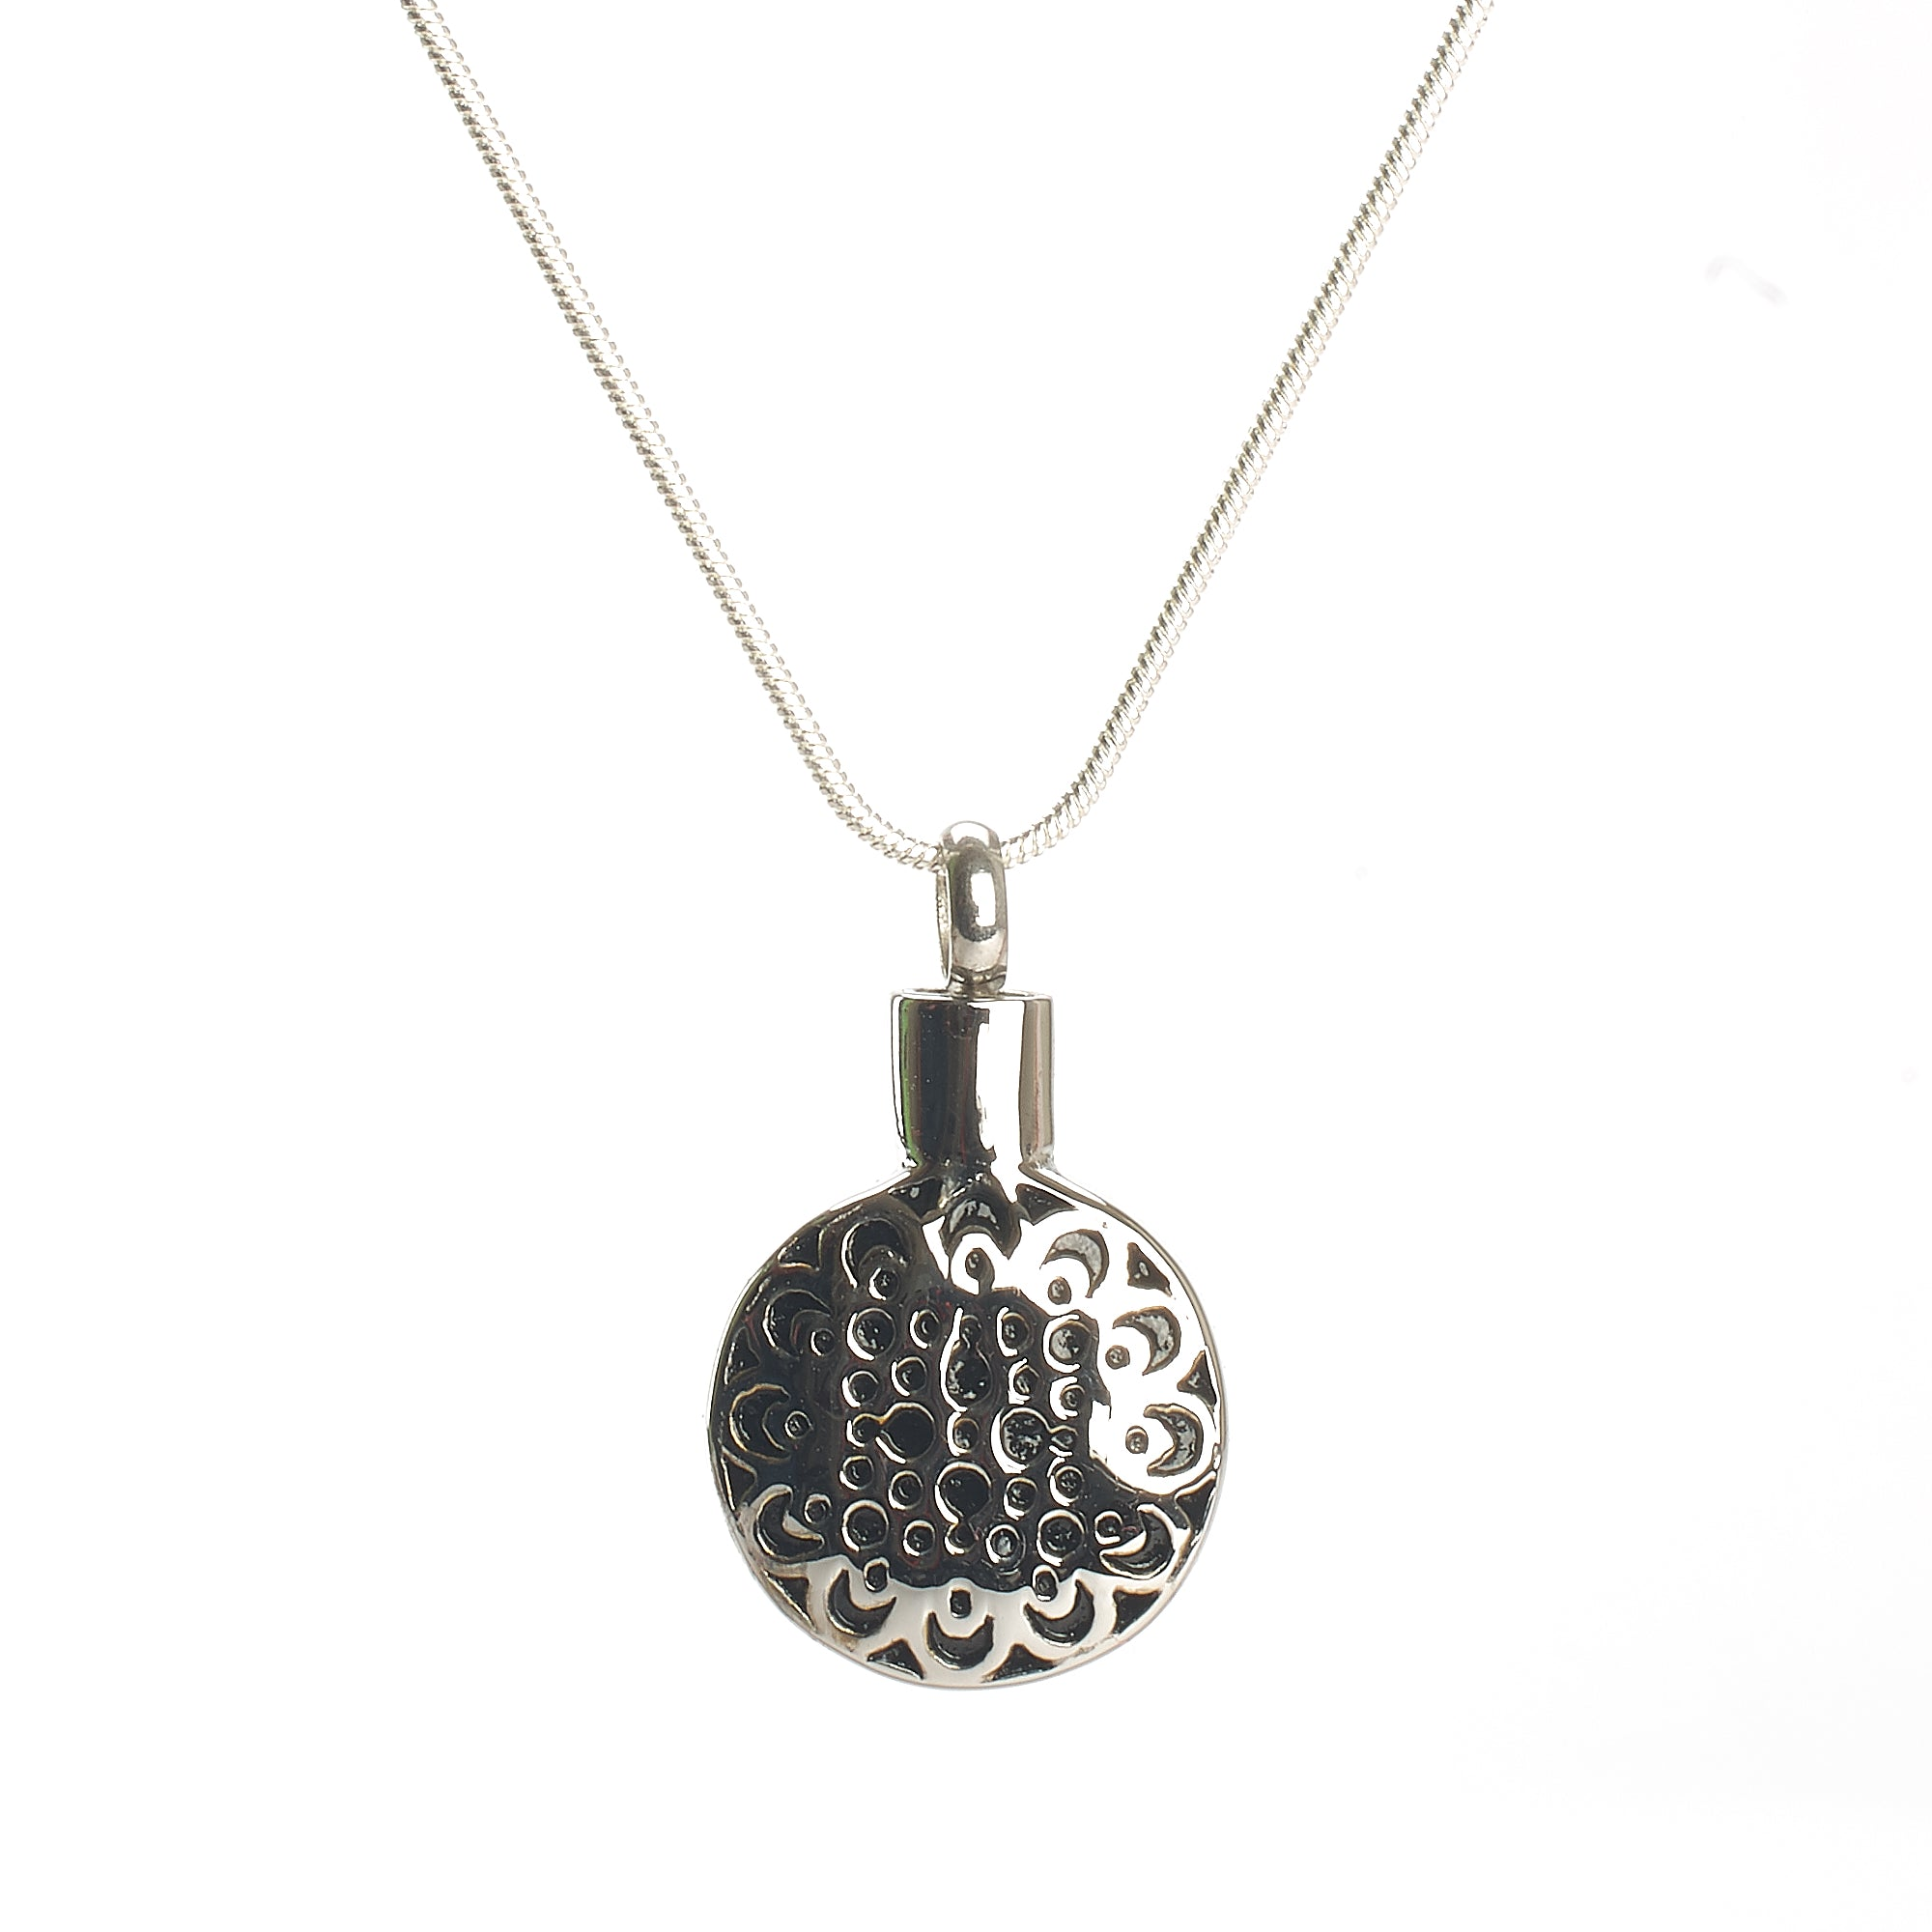 Cremation Pendant - Celtic Inspired Pattern on Round